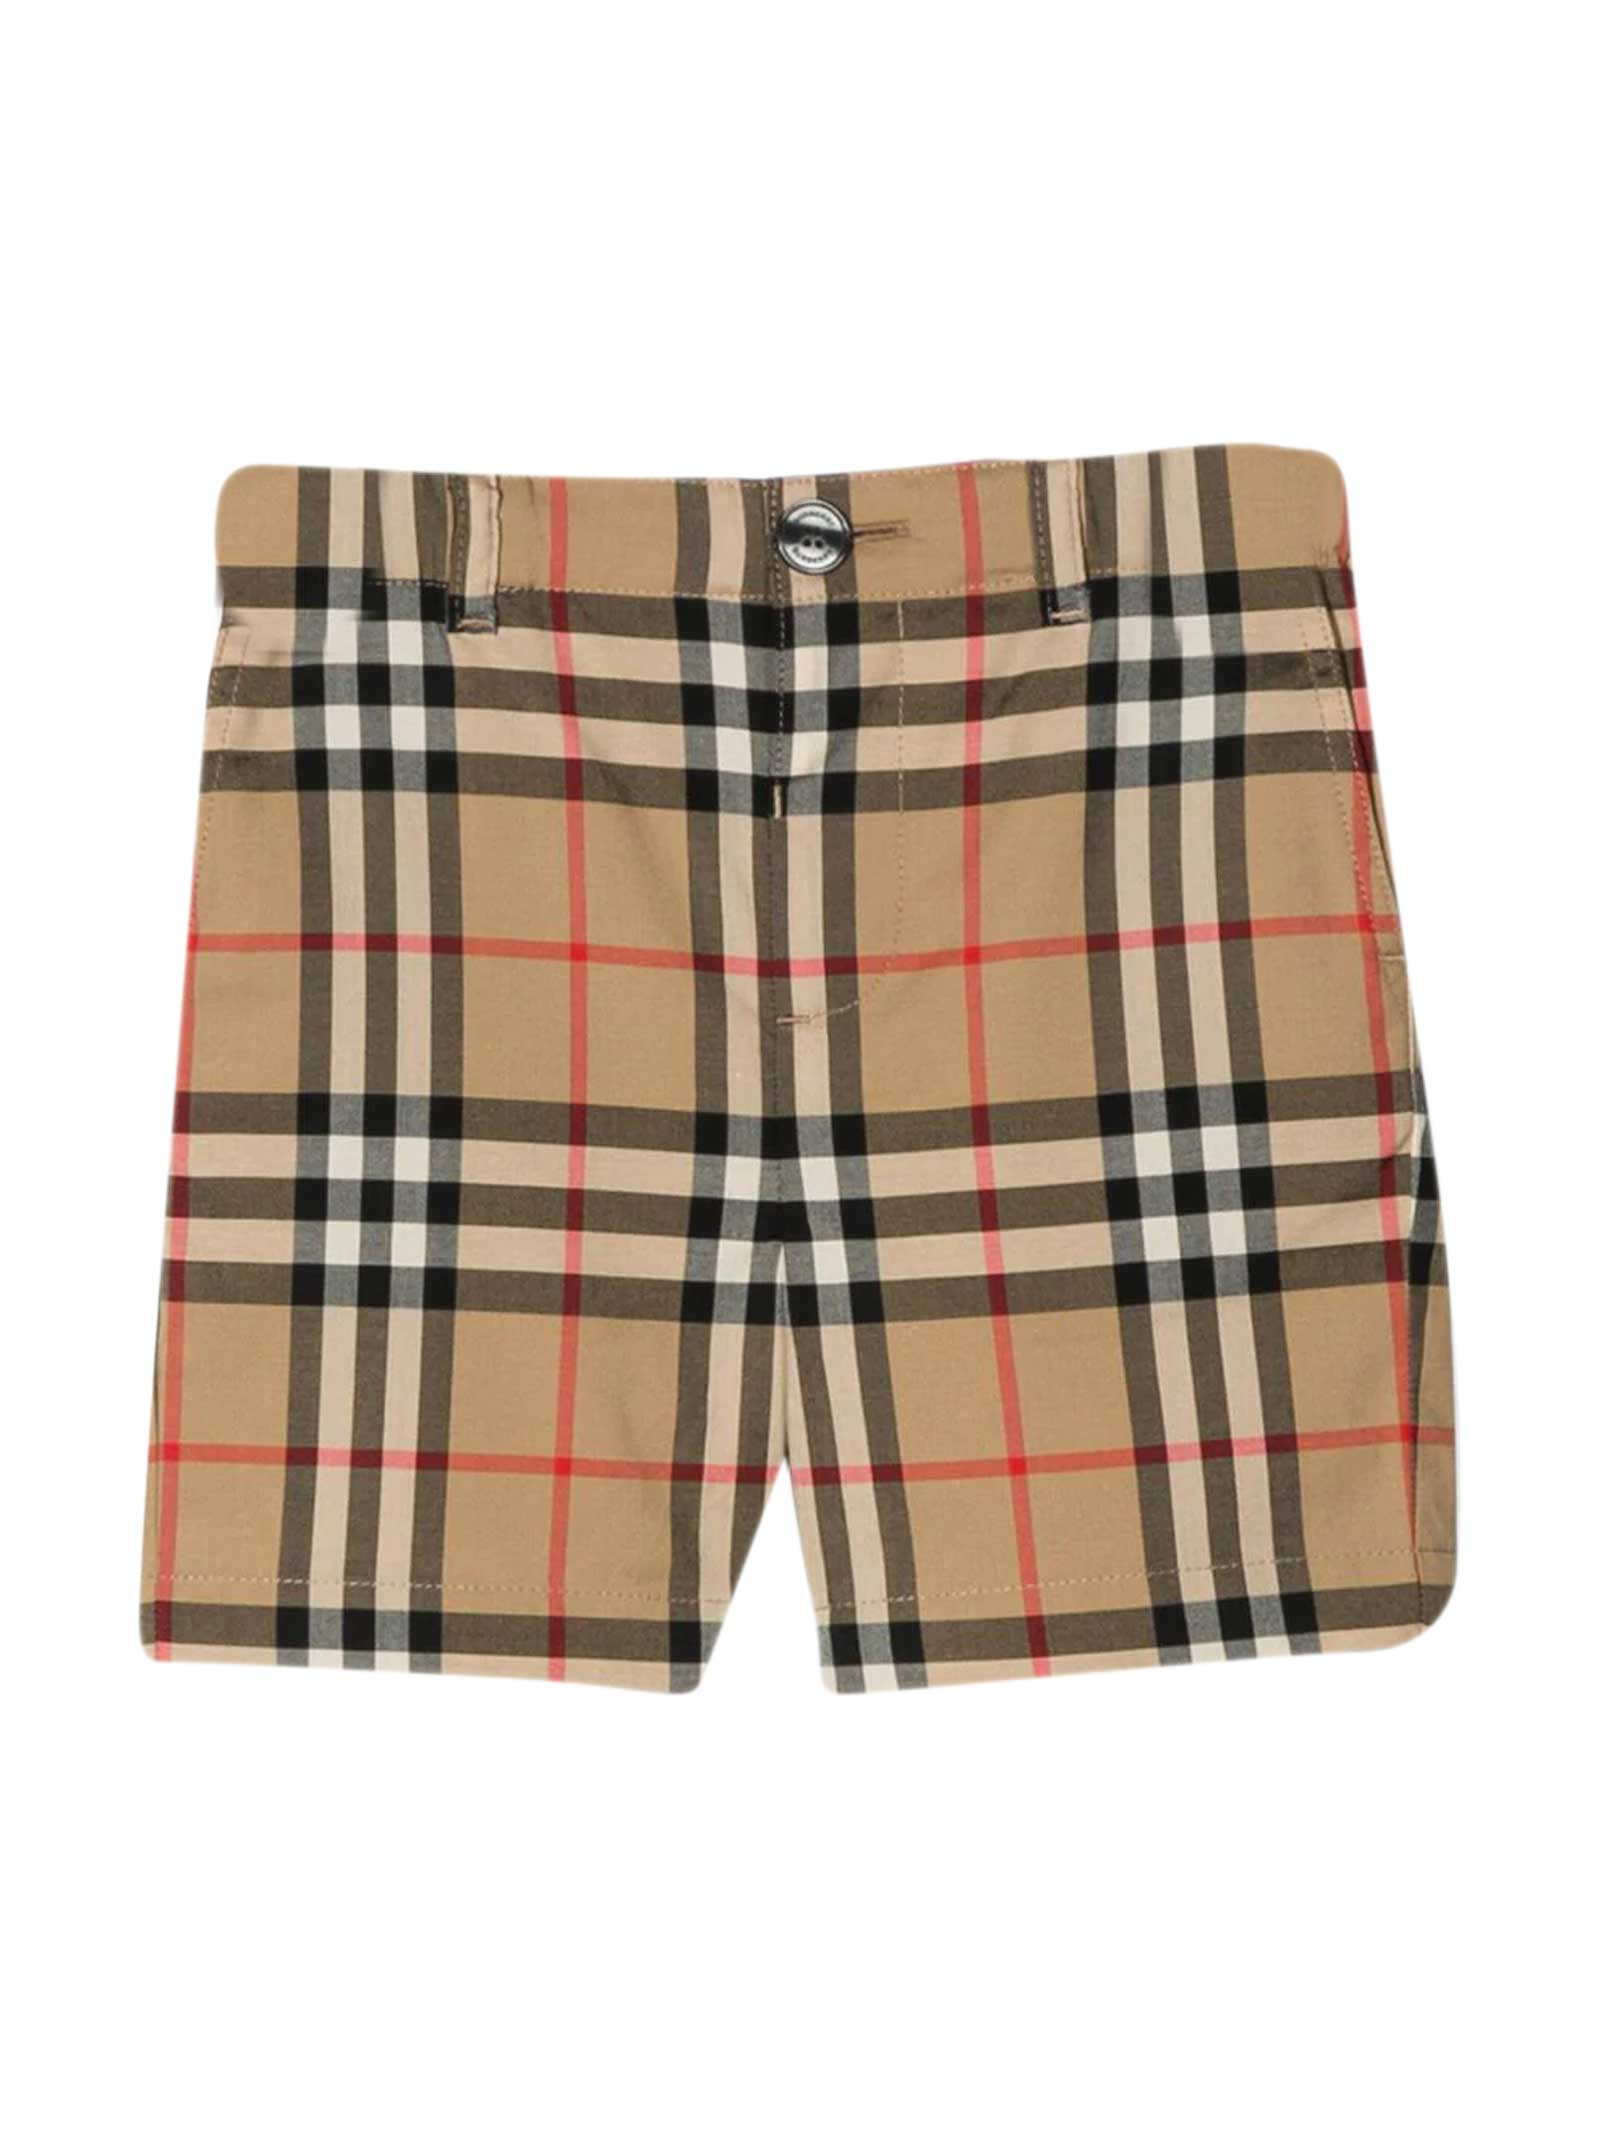 Burberry Babies' Vintage Check Shorts In Beige